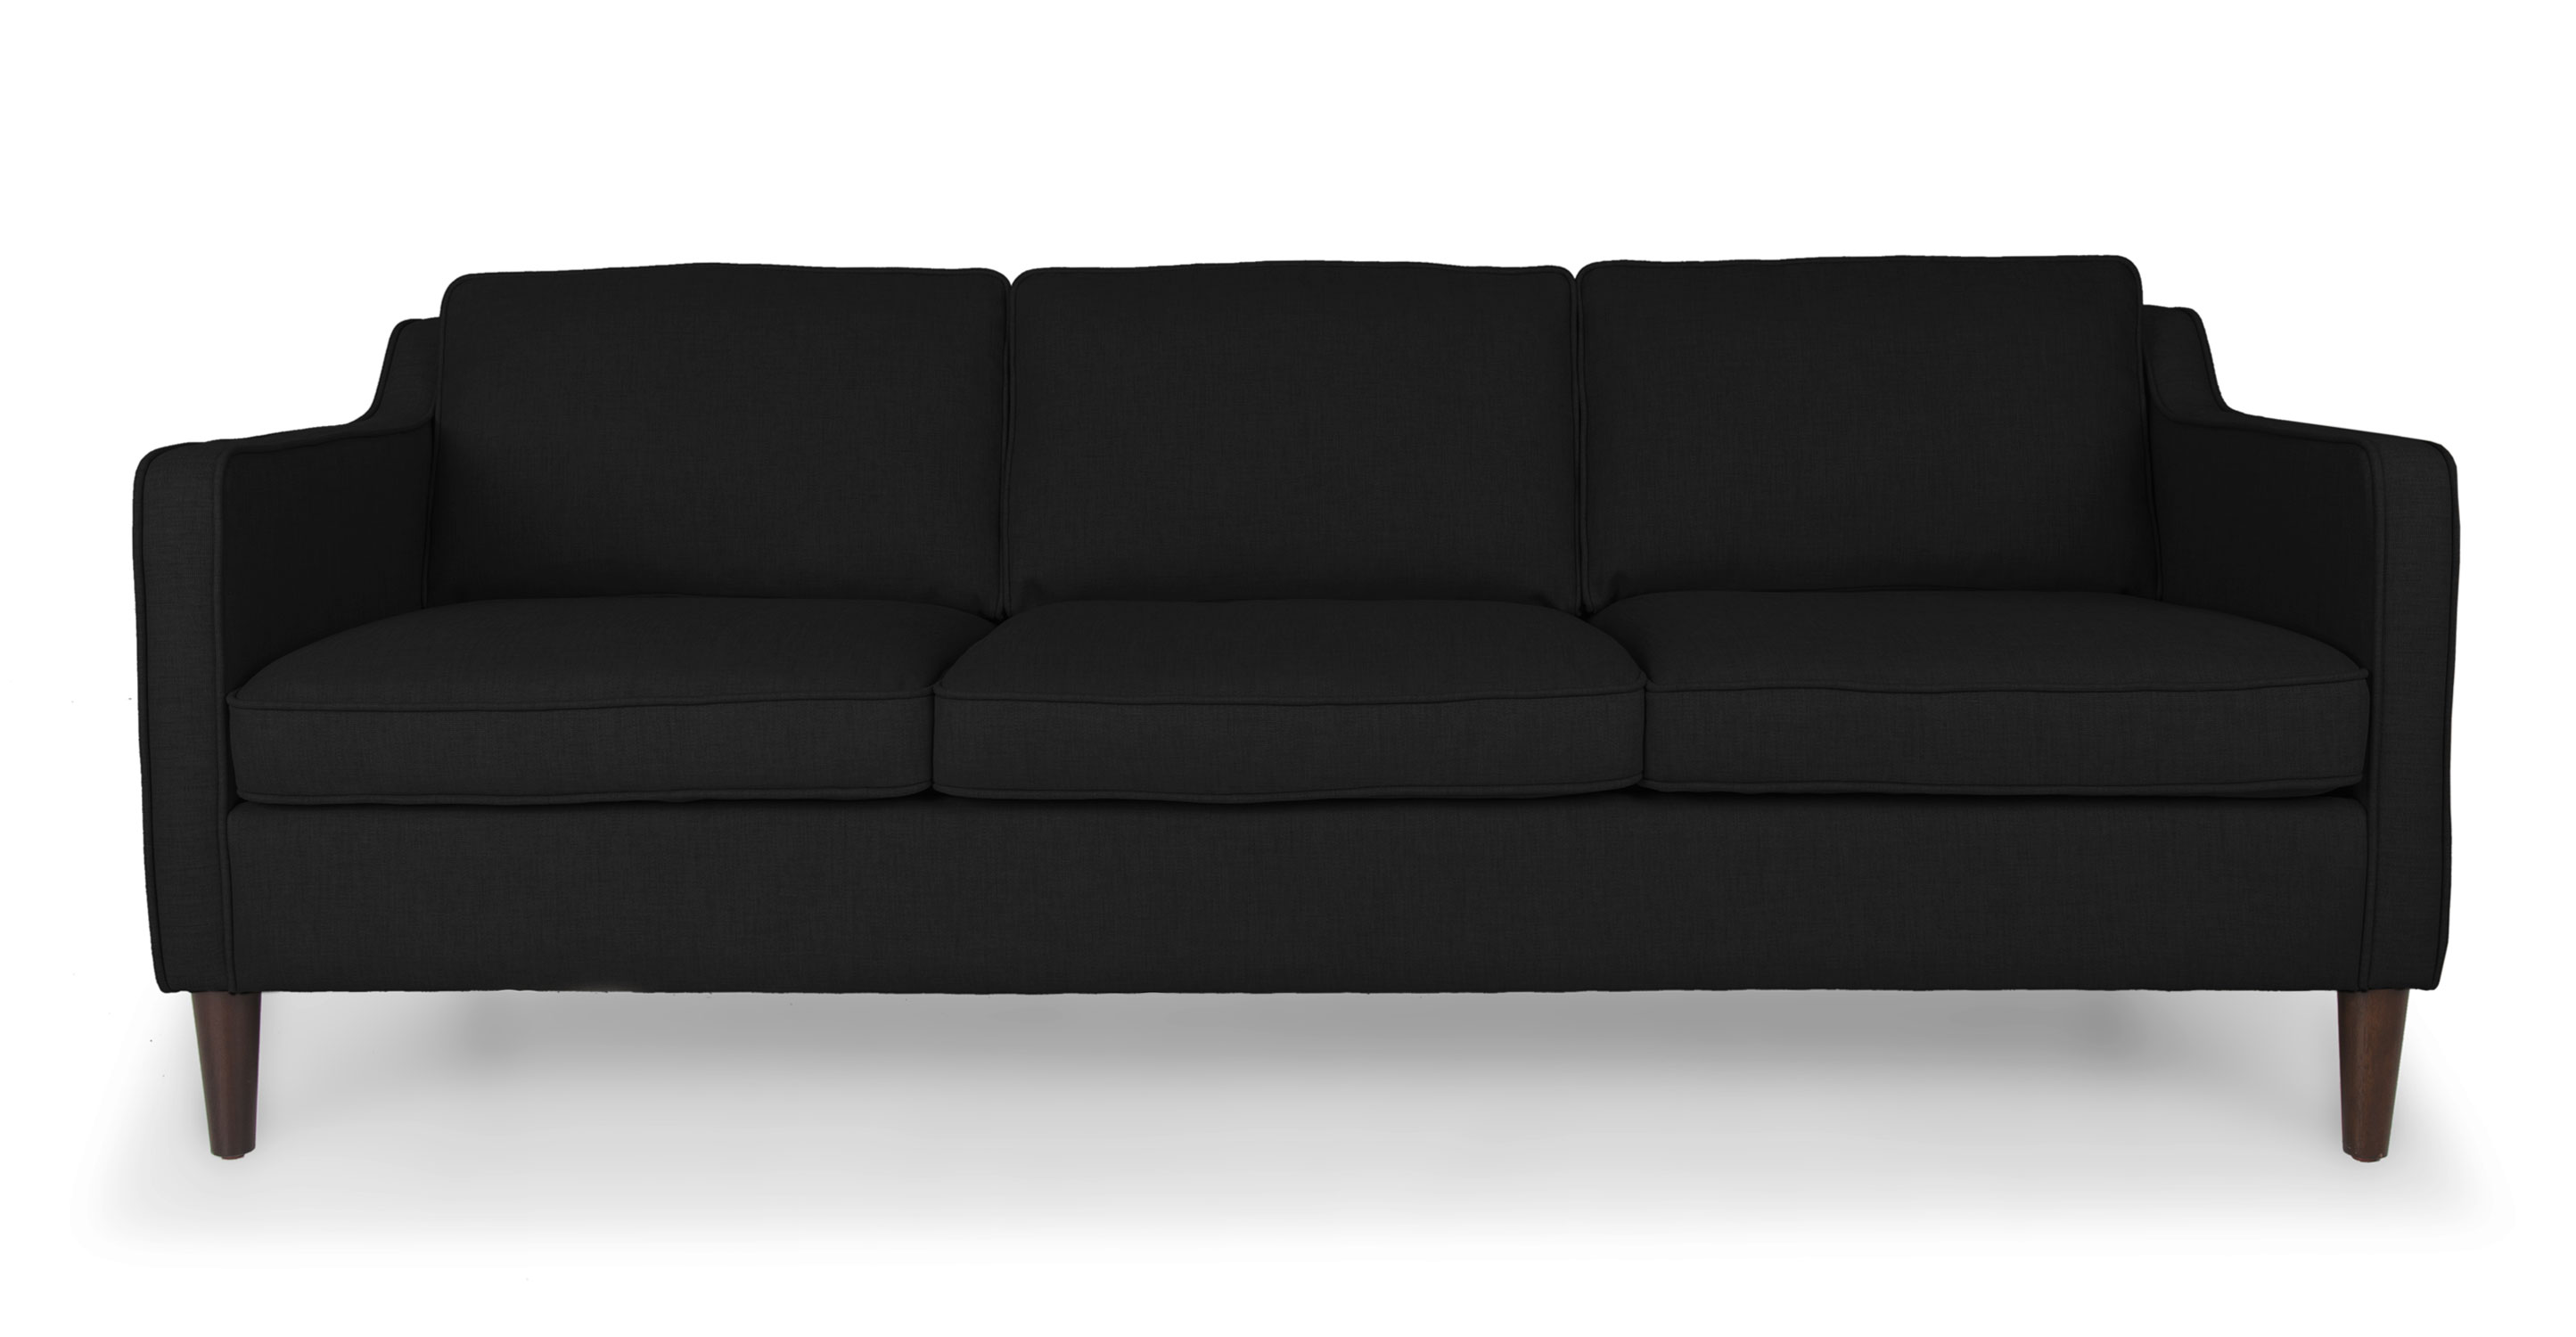 mid century style sofa canada beds hk cherie graphite black sofas article modern